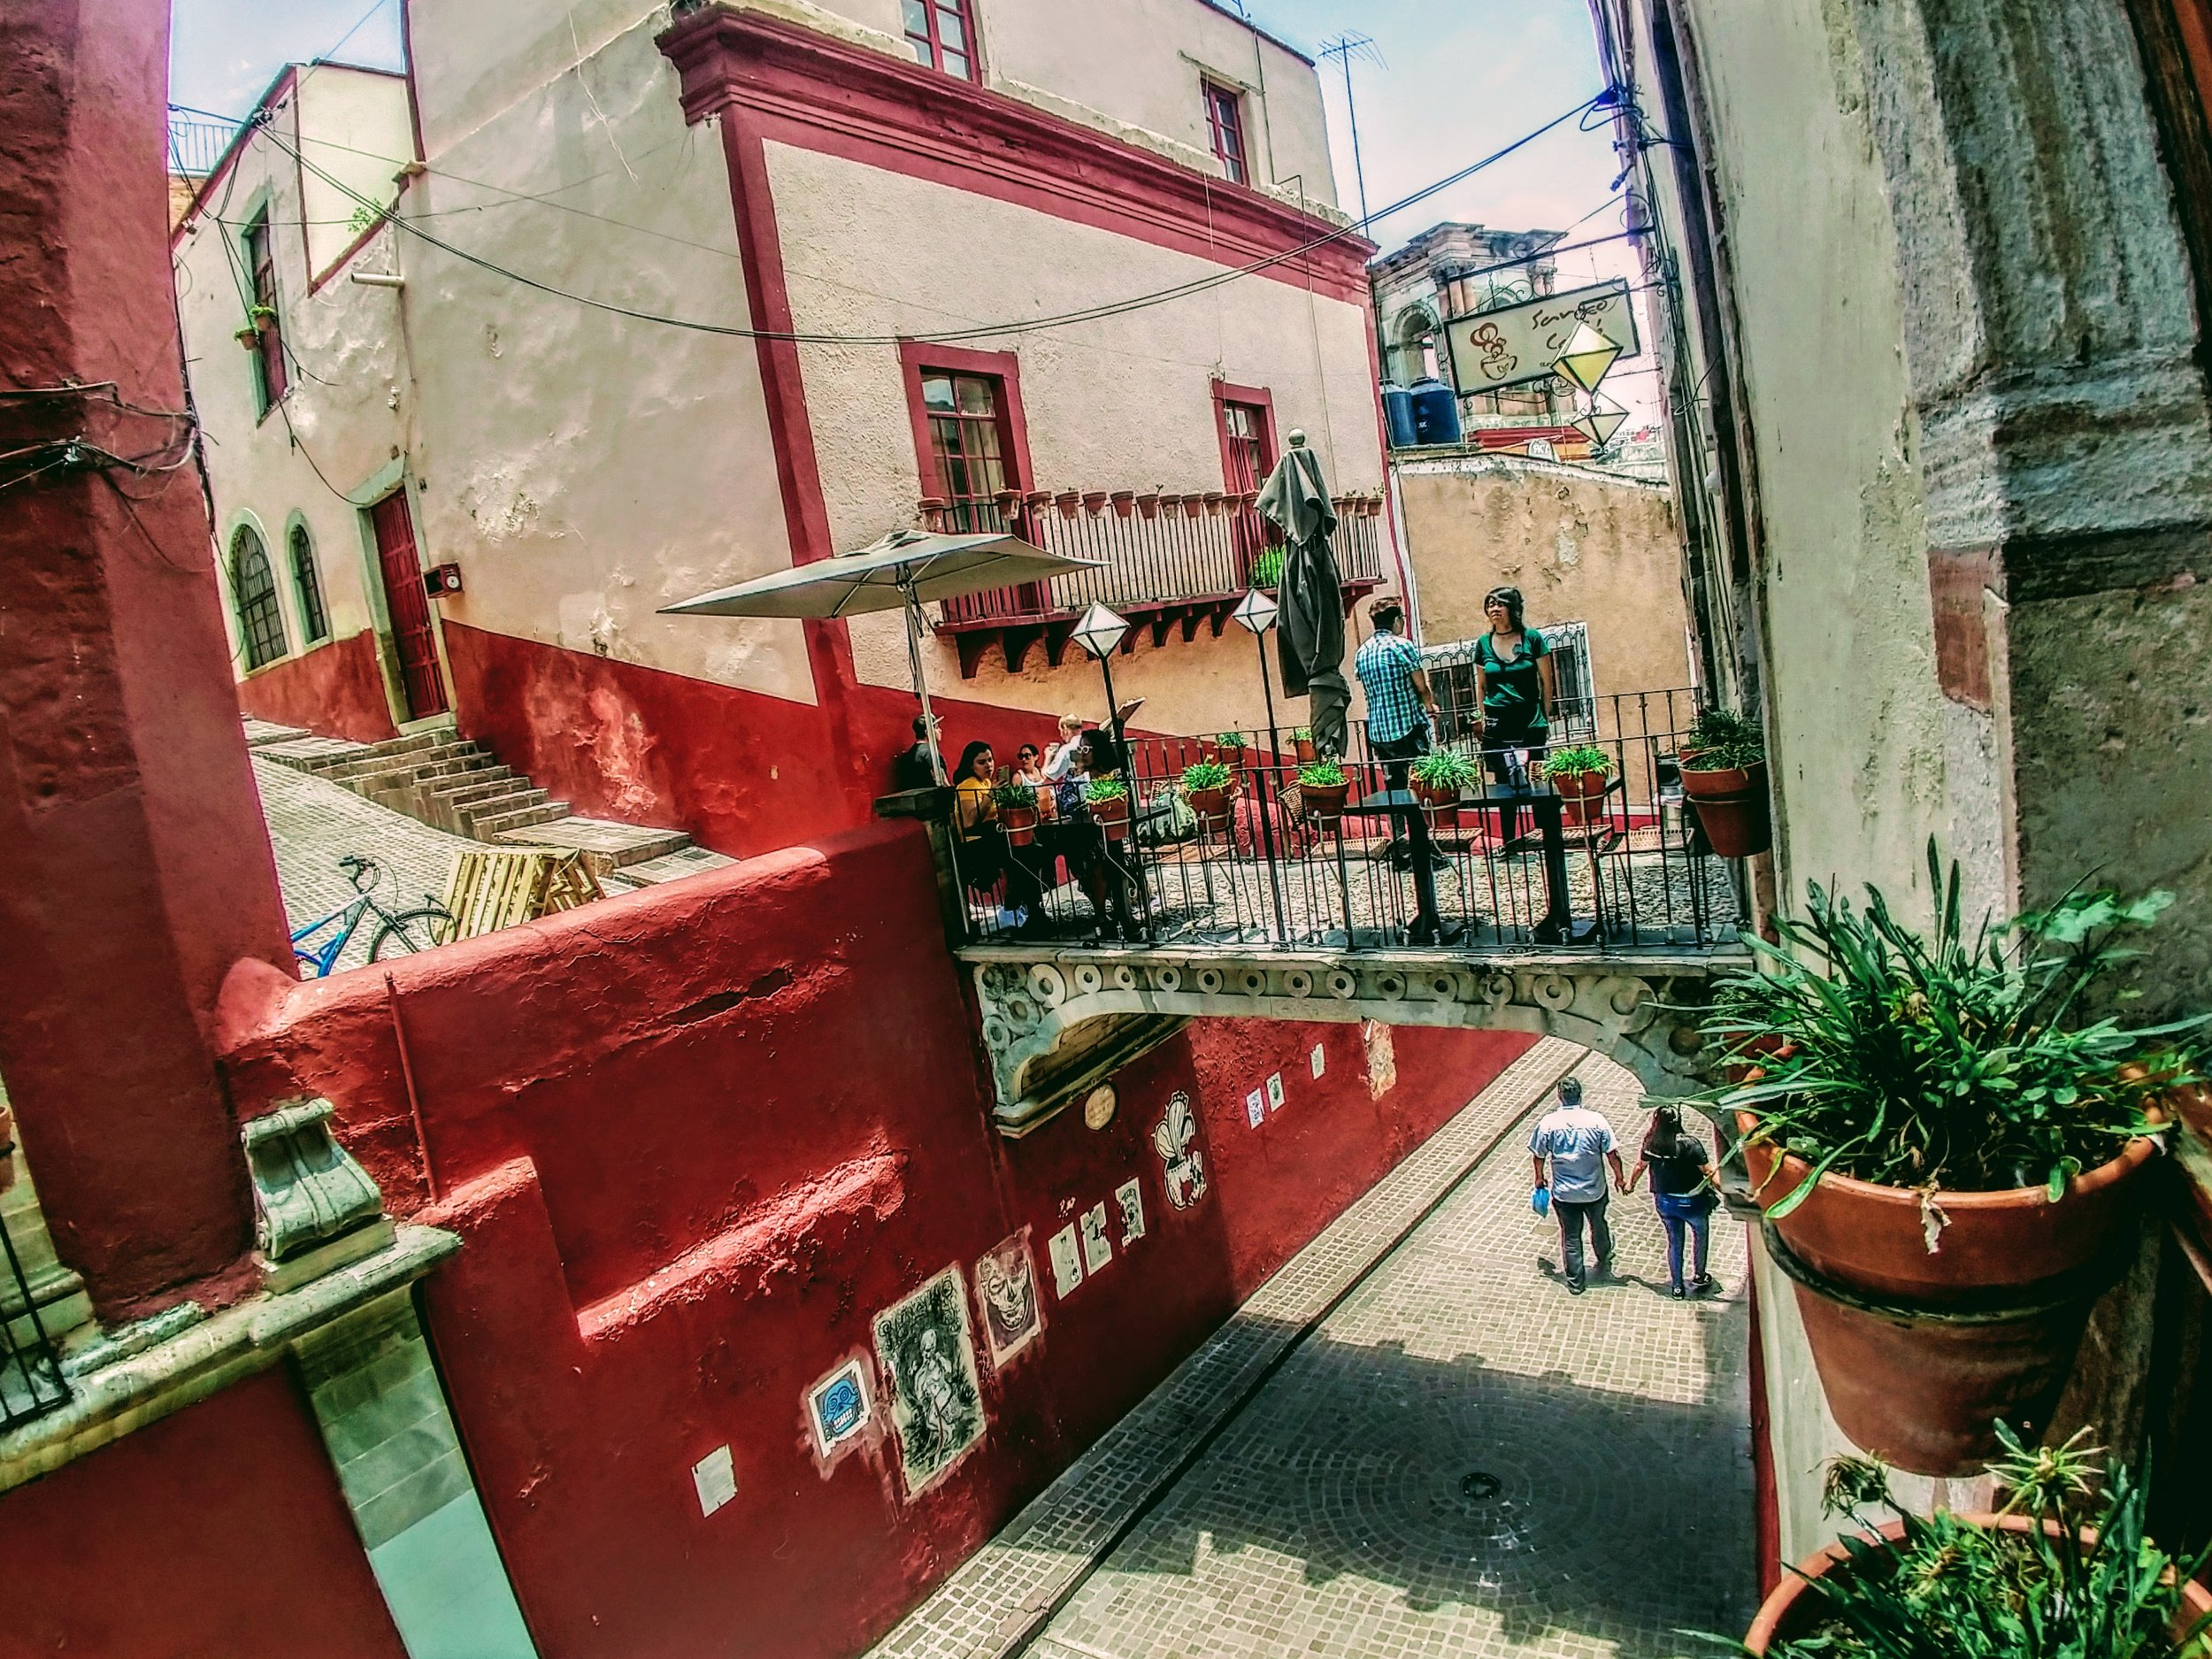 The most frequently photographed cafe in Guanajuato.